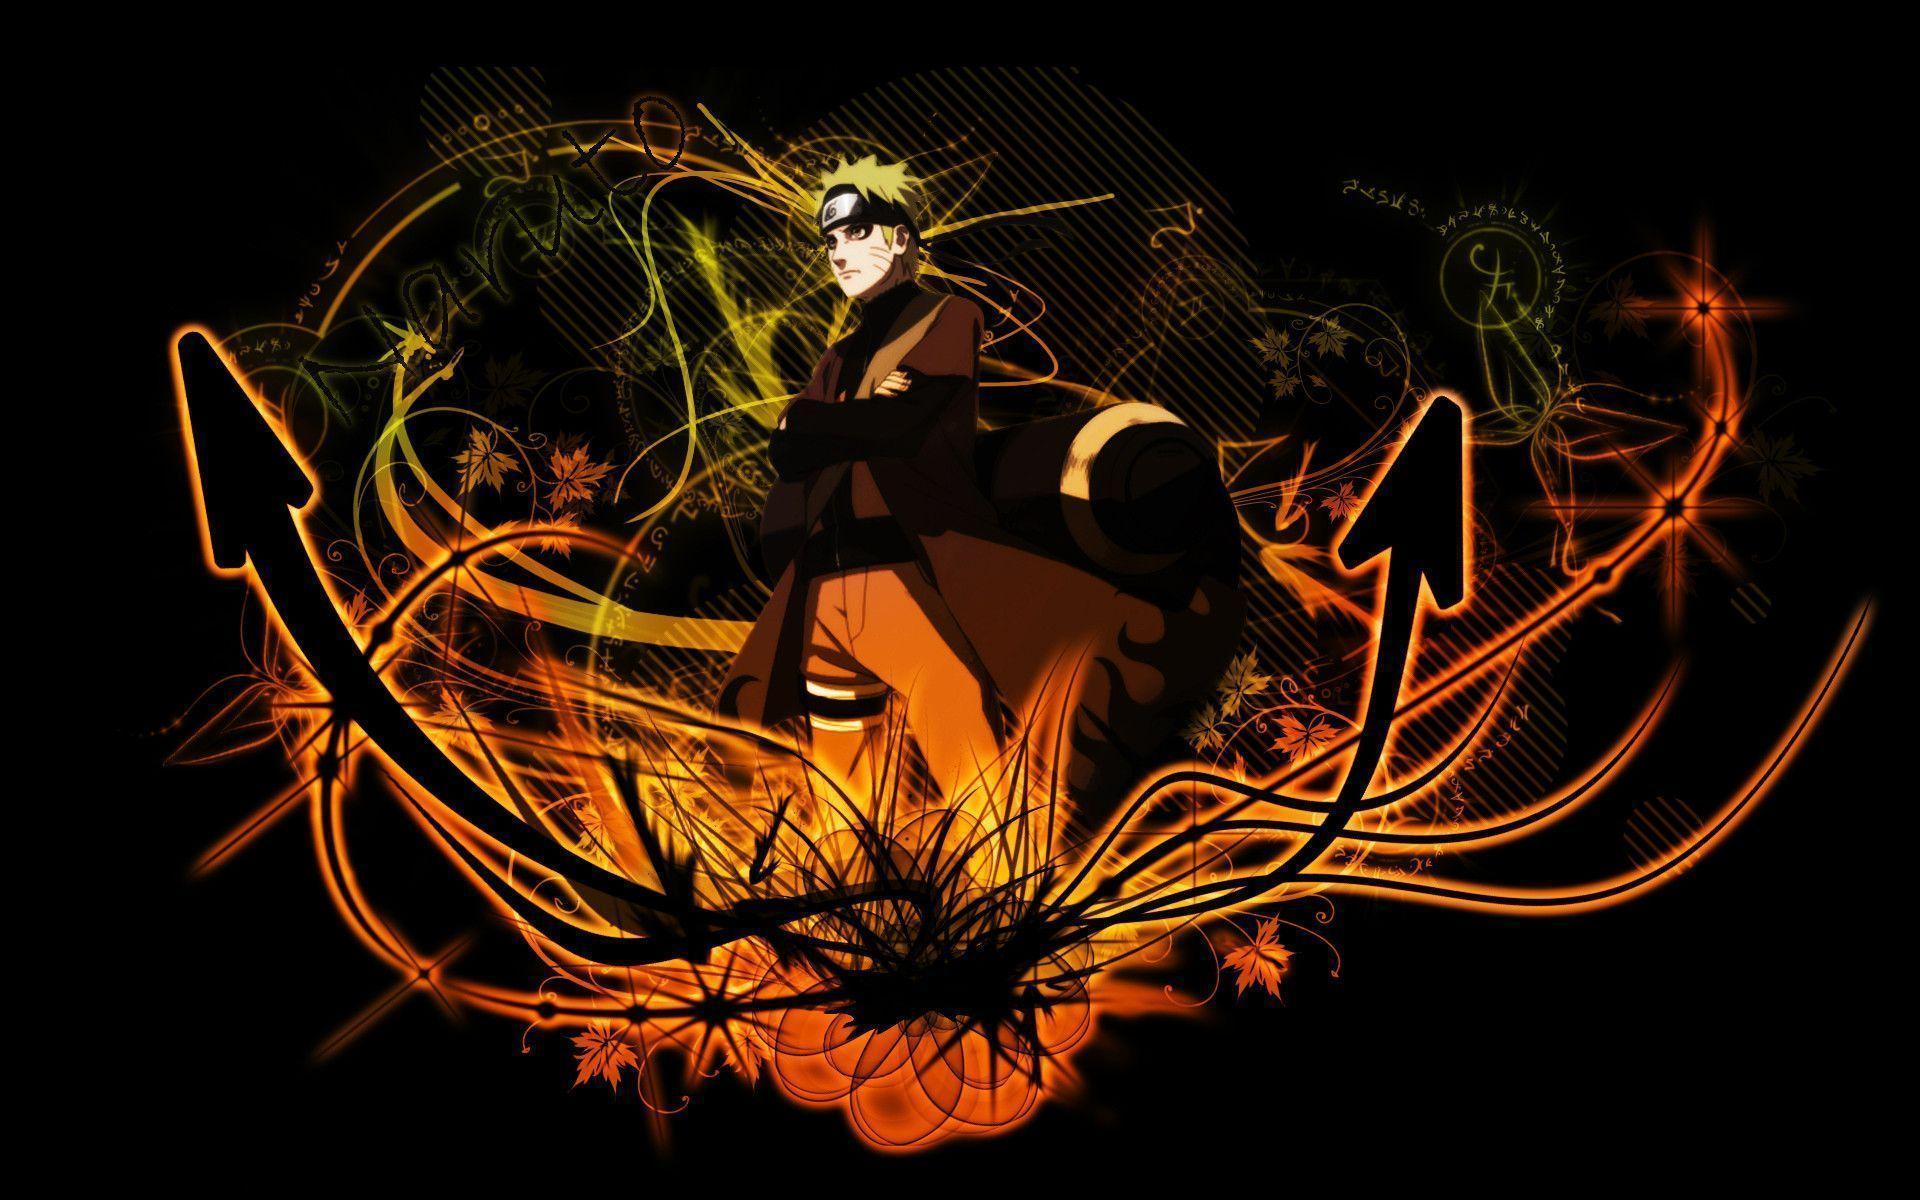 Free Download Naruto Sage Mode Wallpapers 1920x1200 For Your